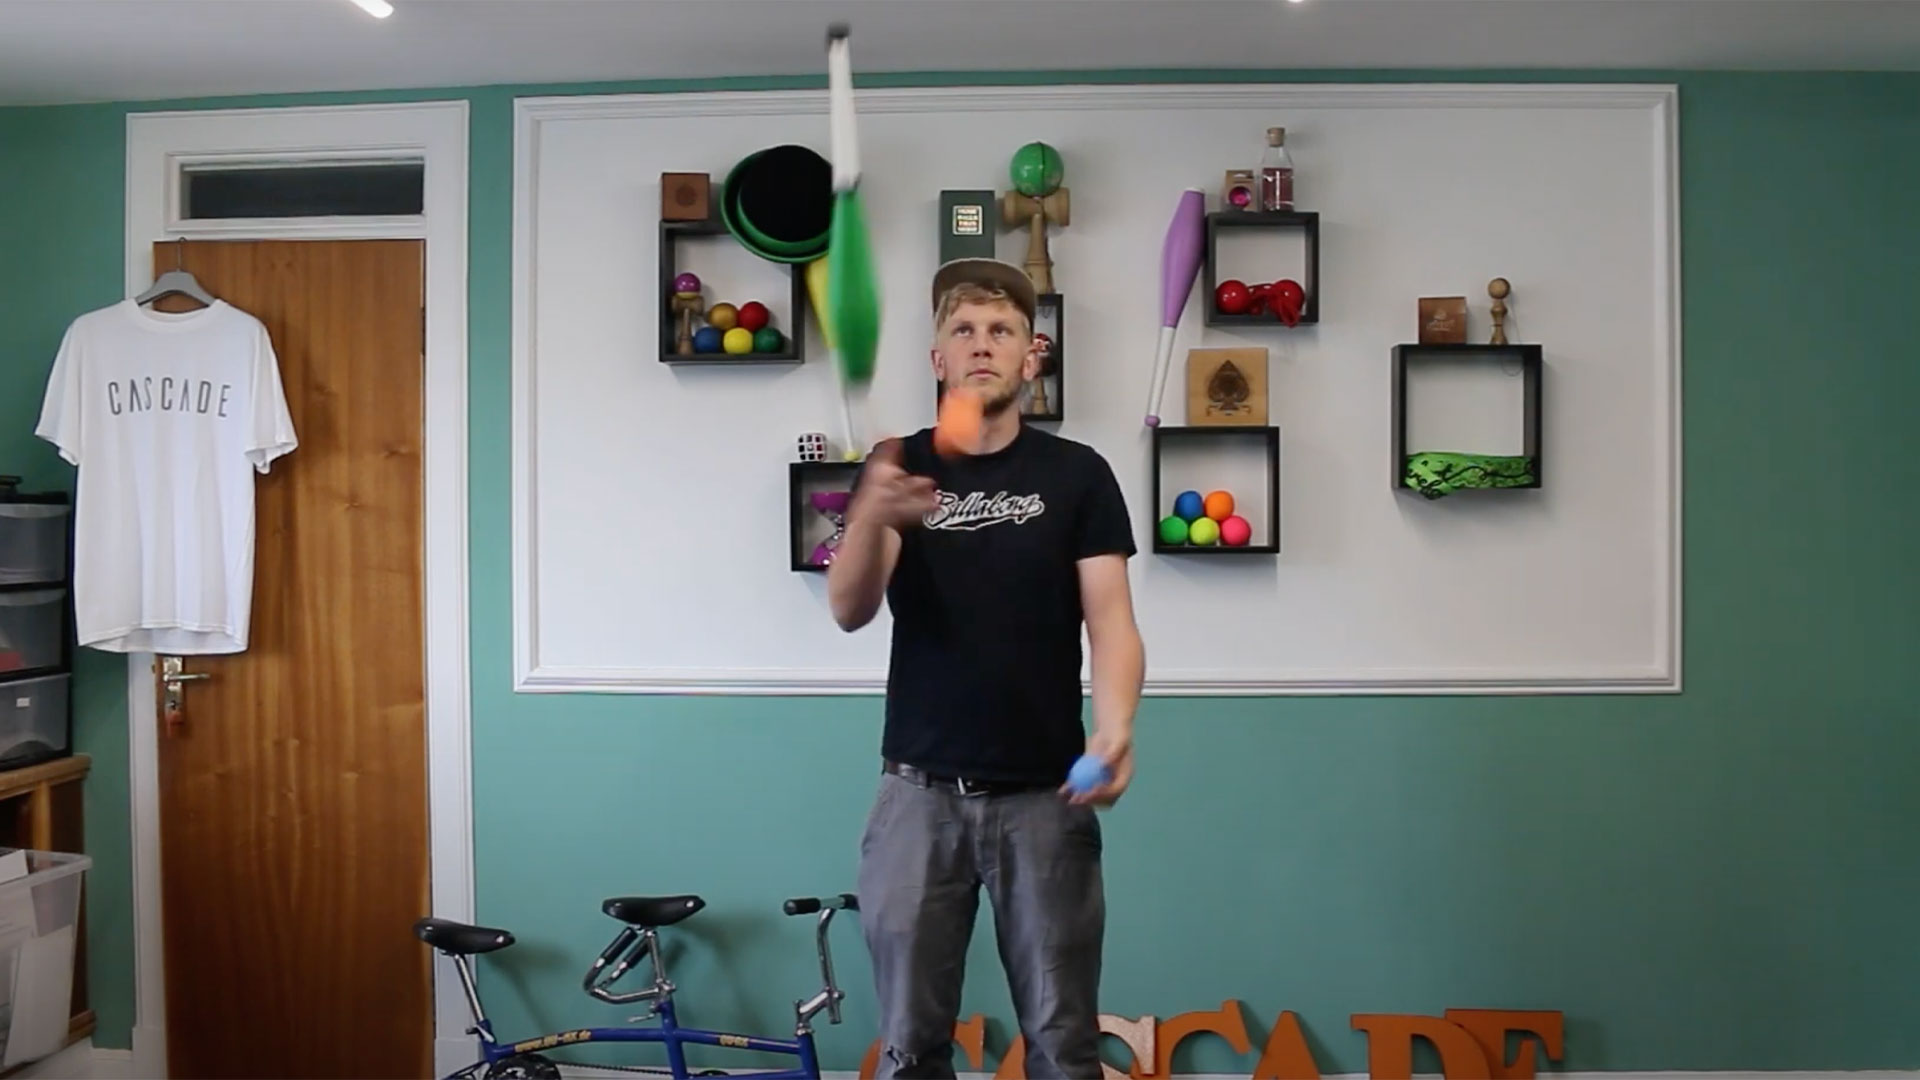 Cascade_Juggling_How_To_Juggle